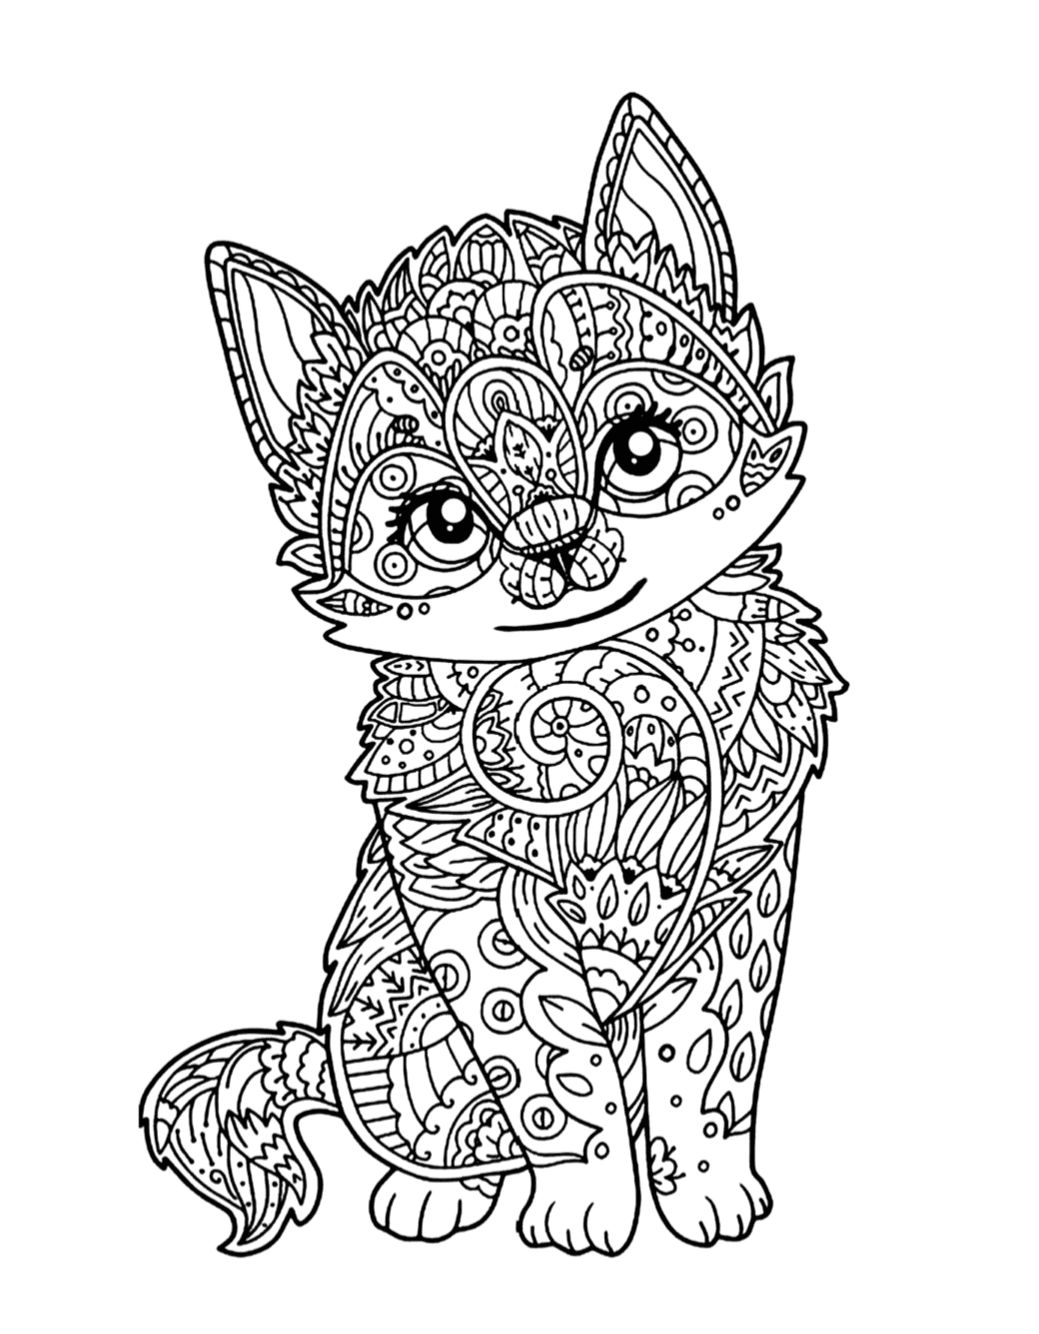 Cute Kitten Coloring Page | Free Download